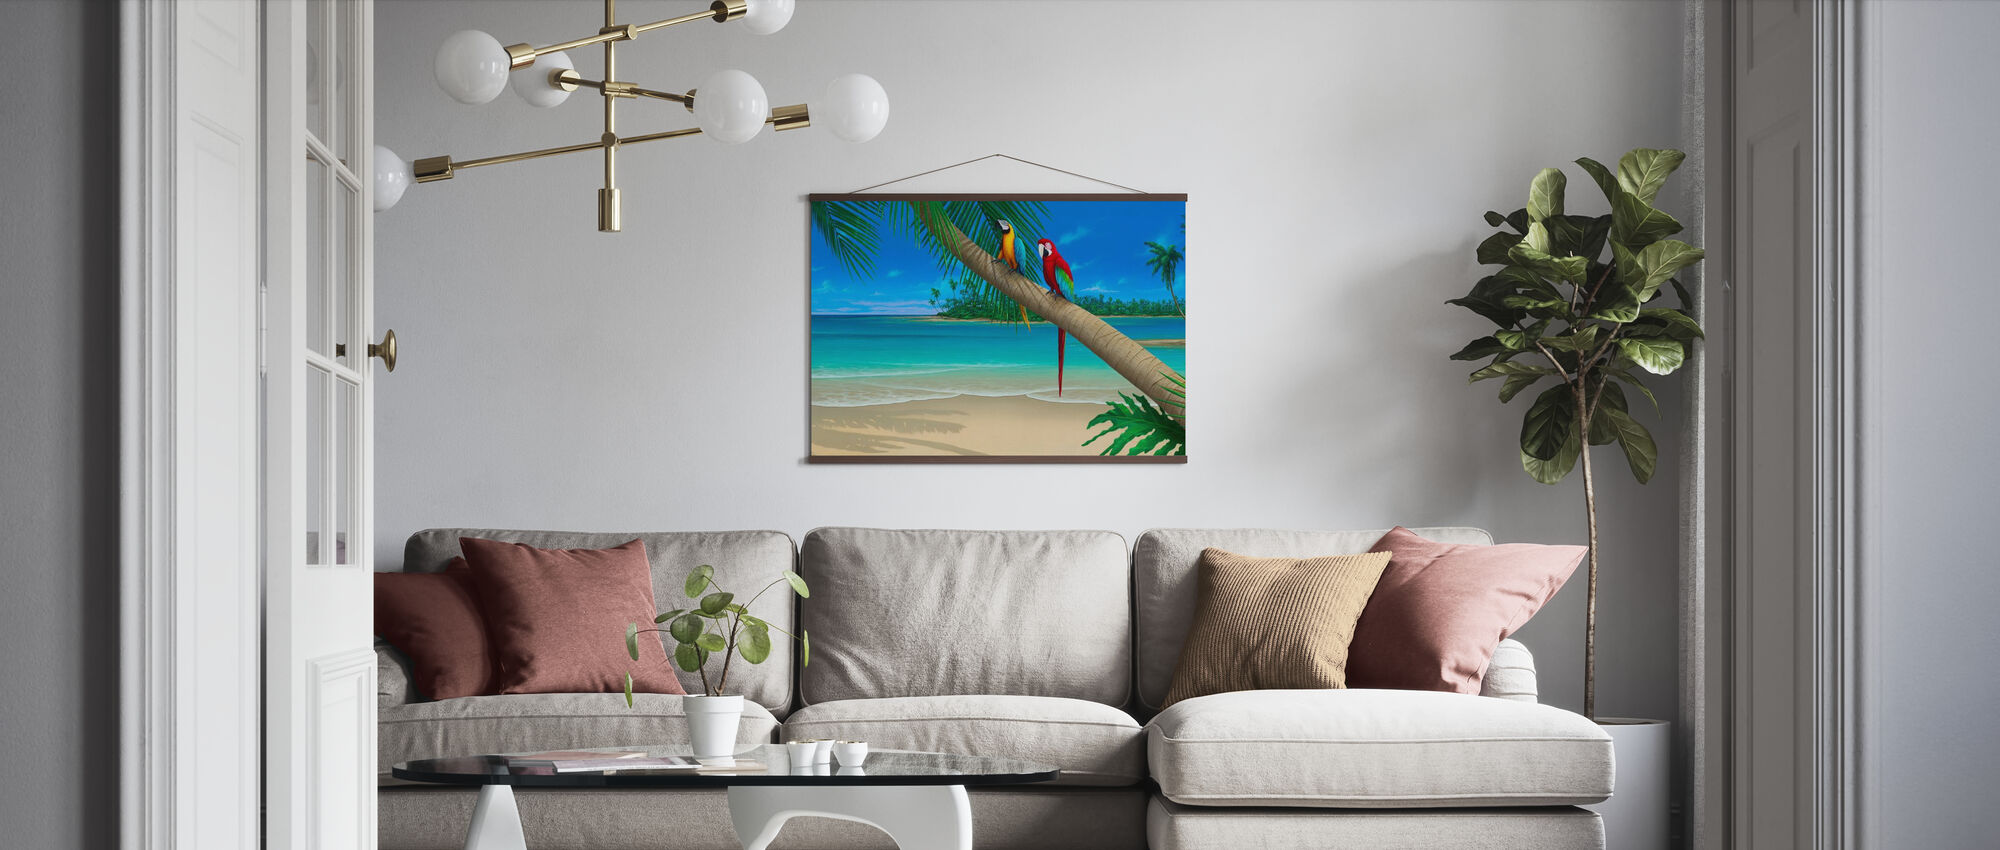 A Perfect Day II - Poster - Living Room